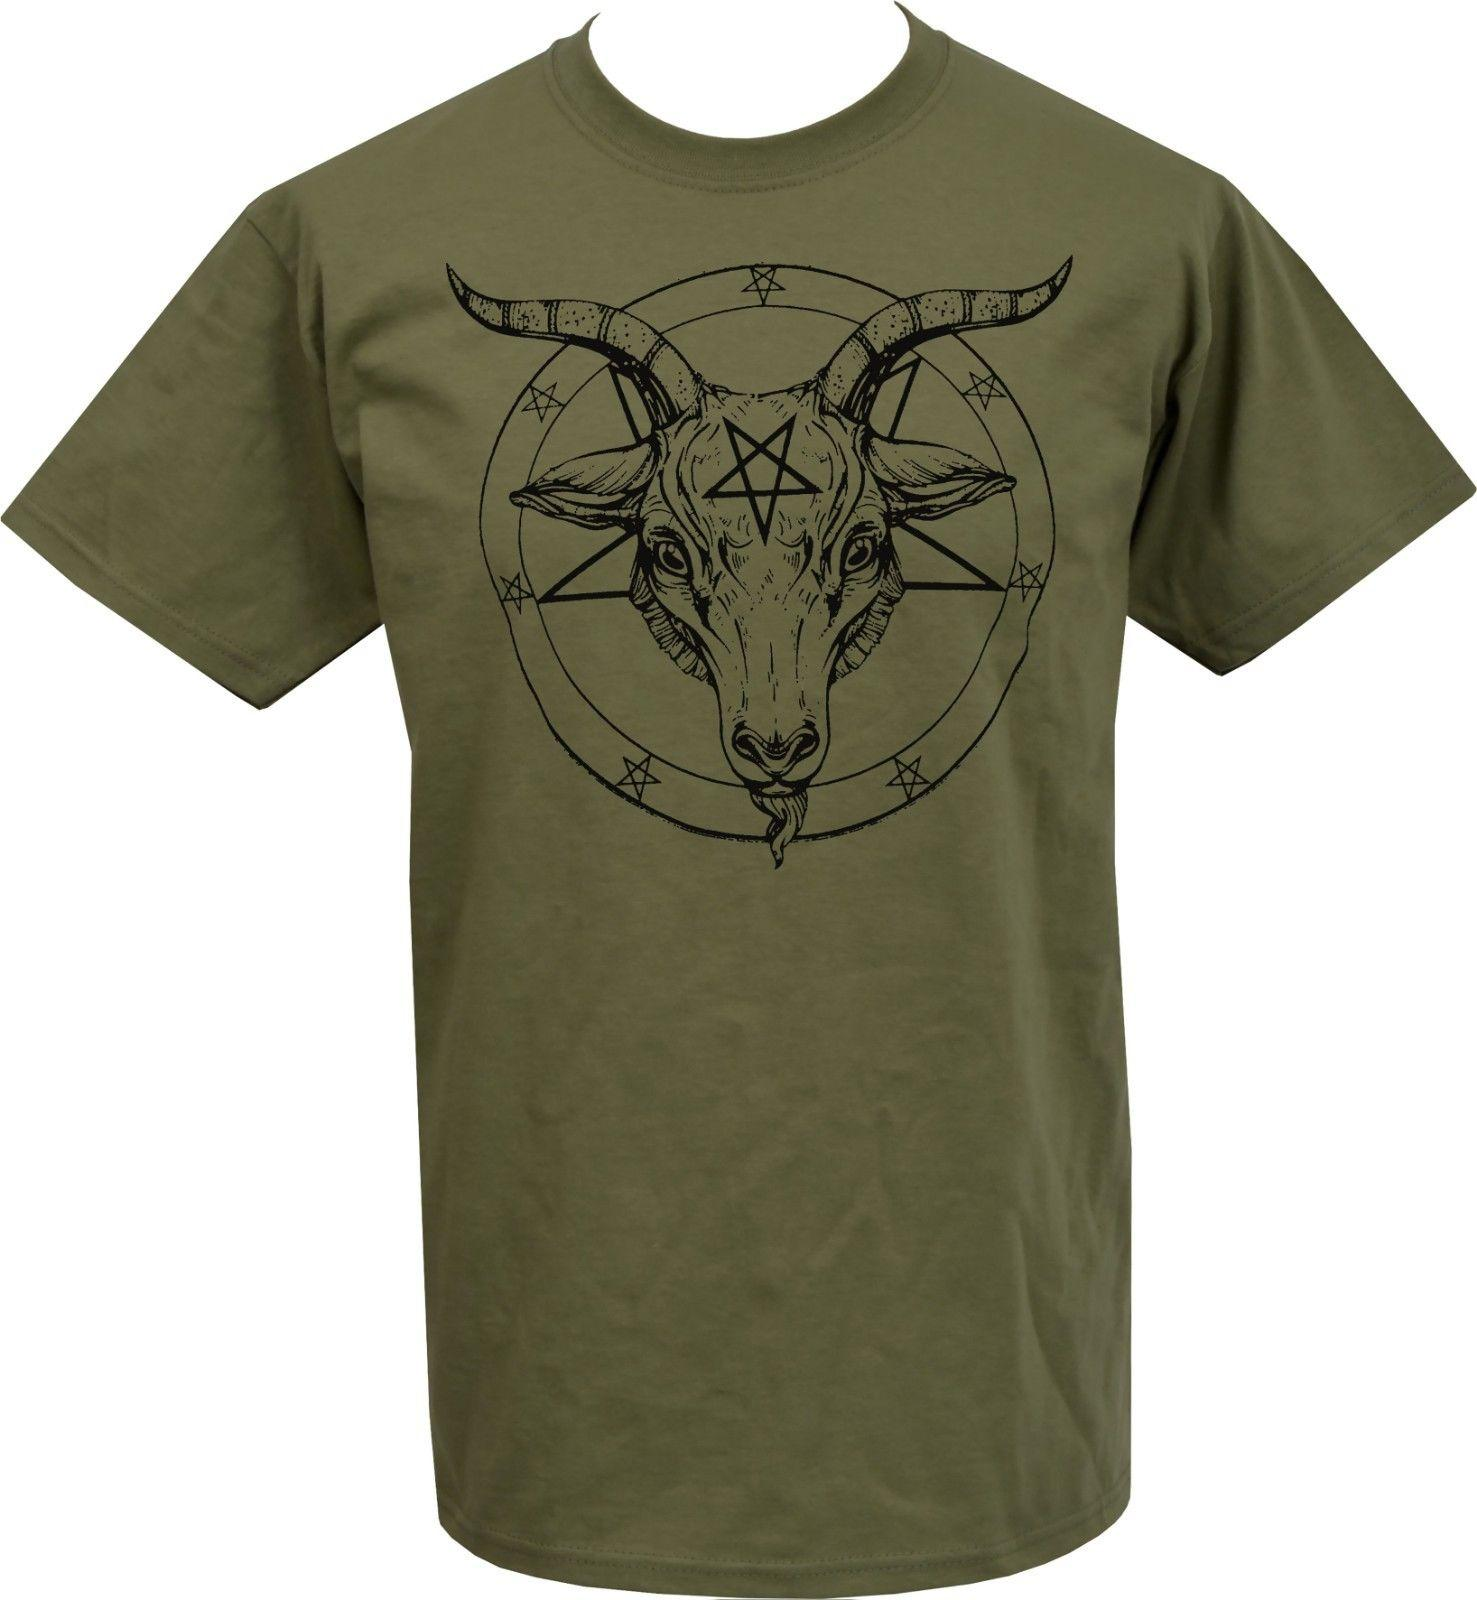 MENS KHAKI OLIVE GREEN T SHIRT BAPHOMET PENTAGRAM SATANTIC OCCULT CHURCH  SATAN Funny Online Tee Shirts Shopping Funniest Tee Shirts From  Thetoynation d4694da882c